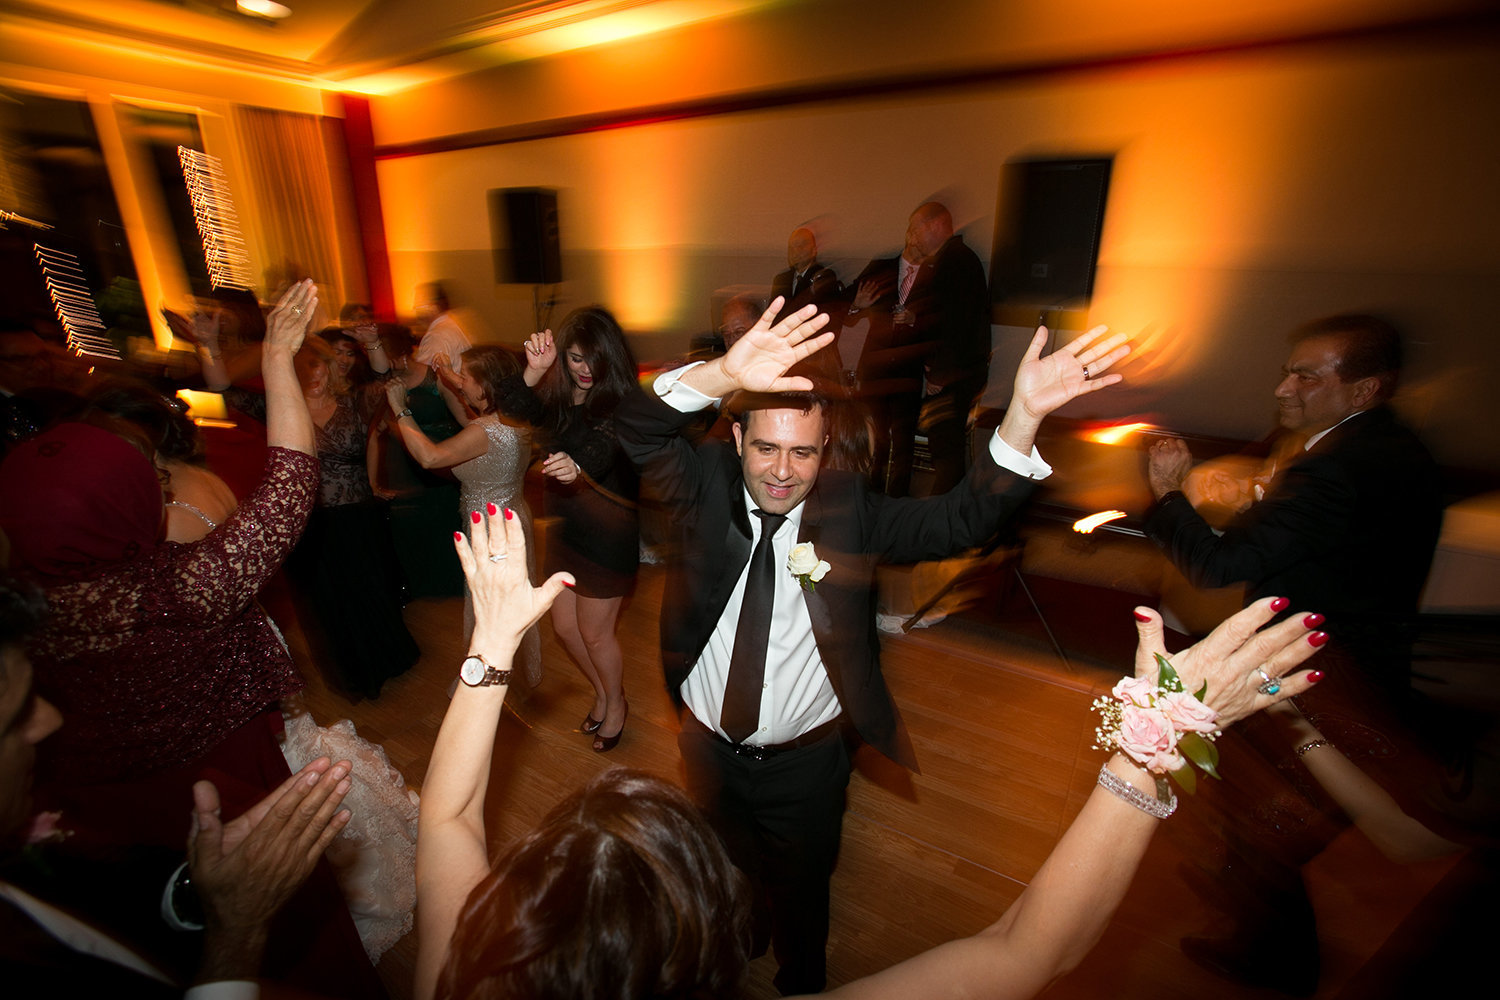 Dance party at a wedding reception